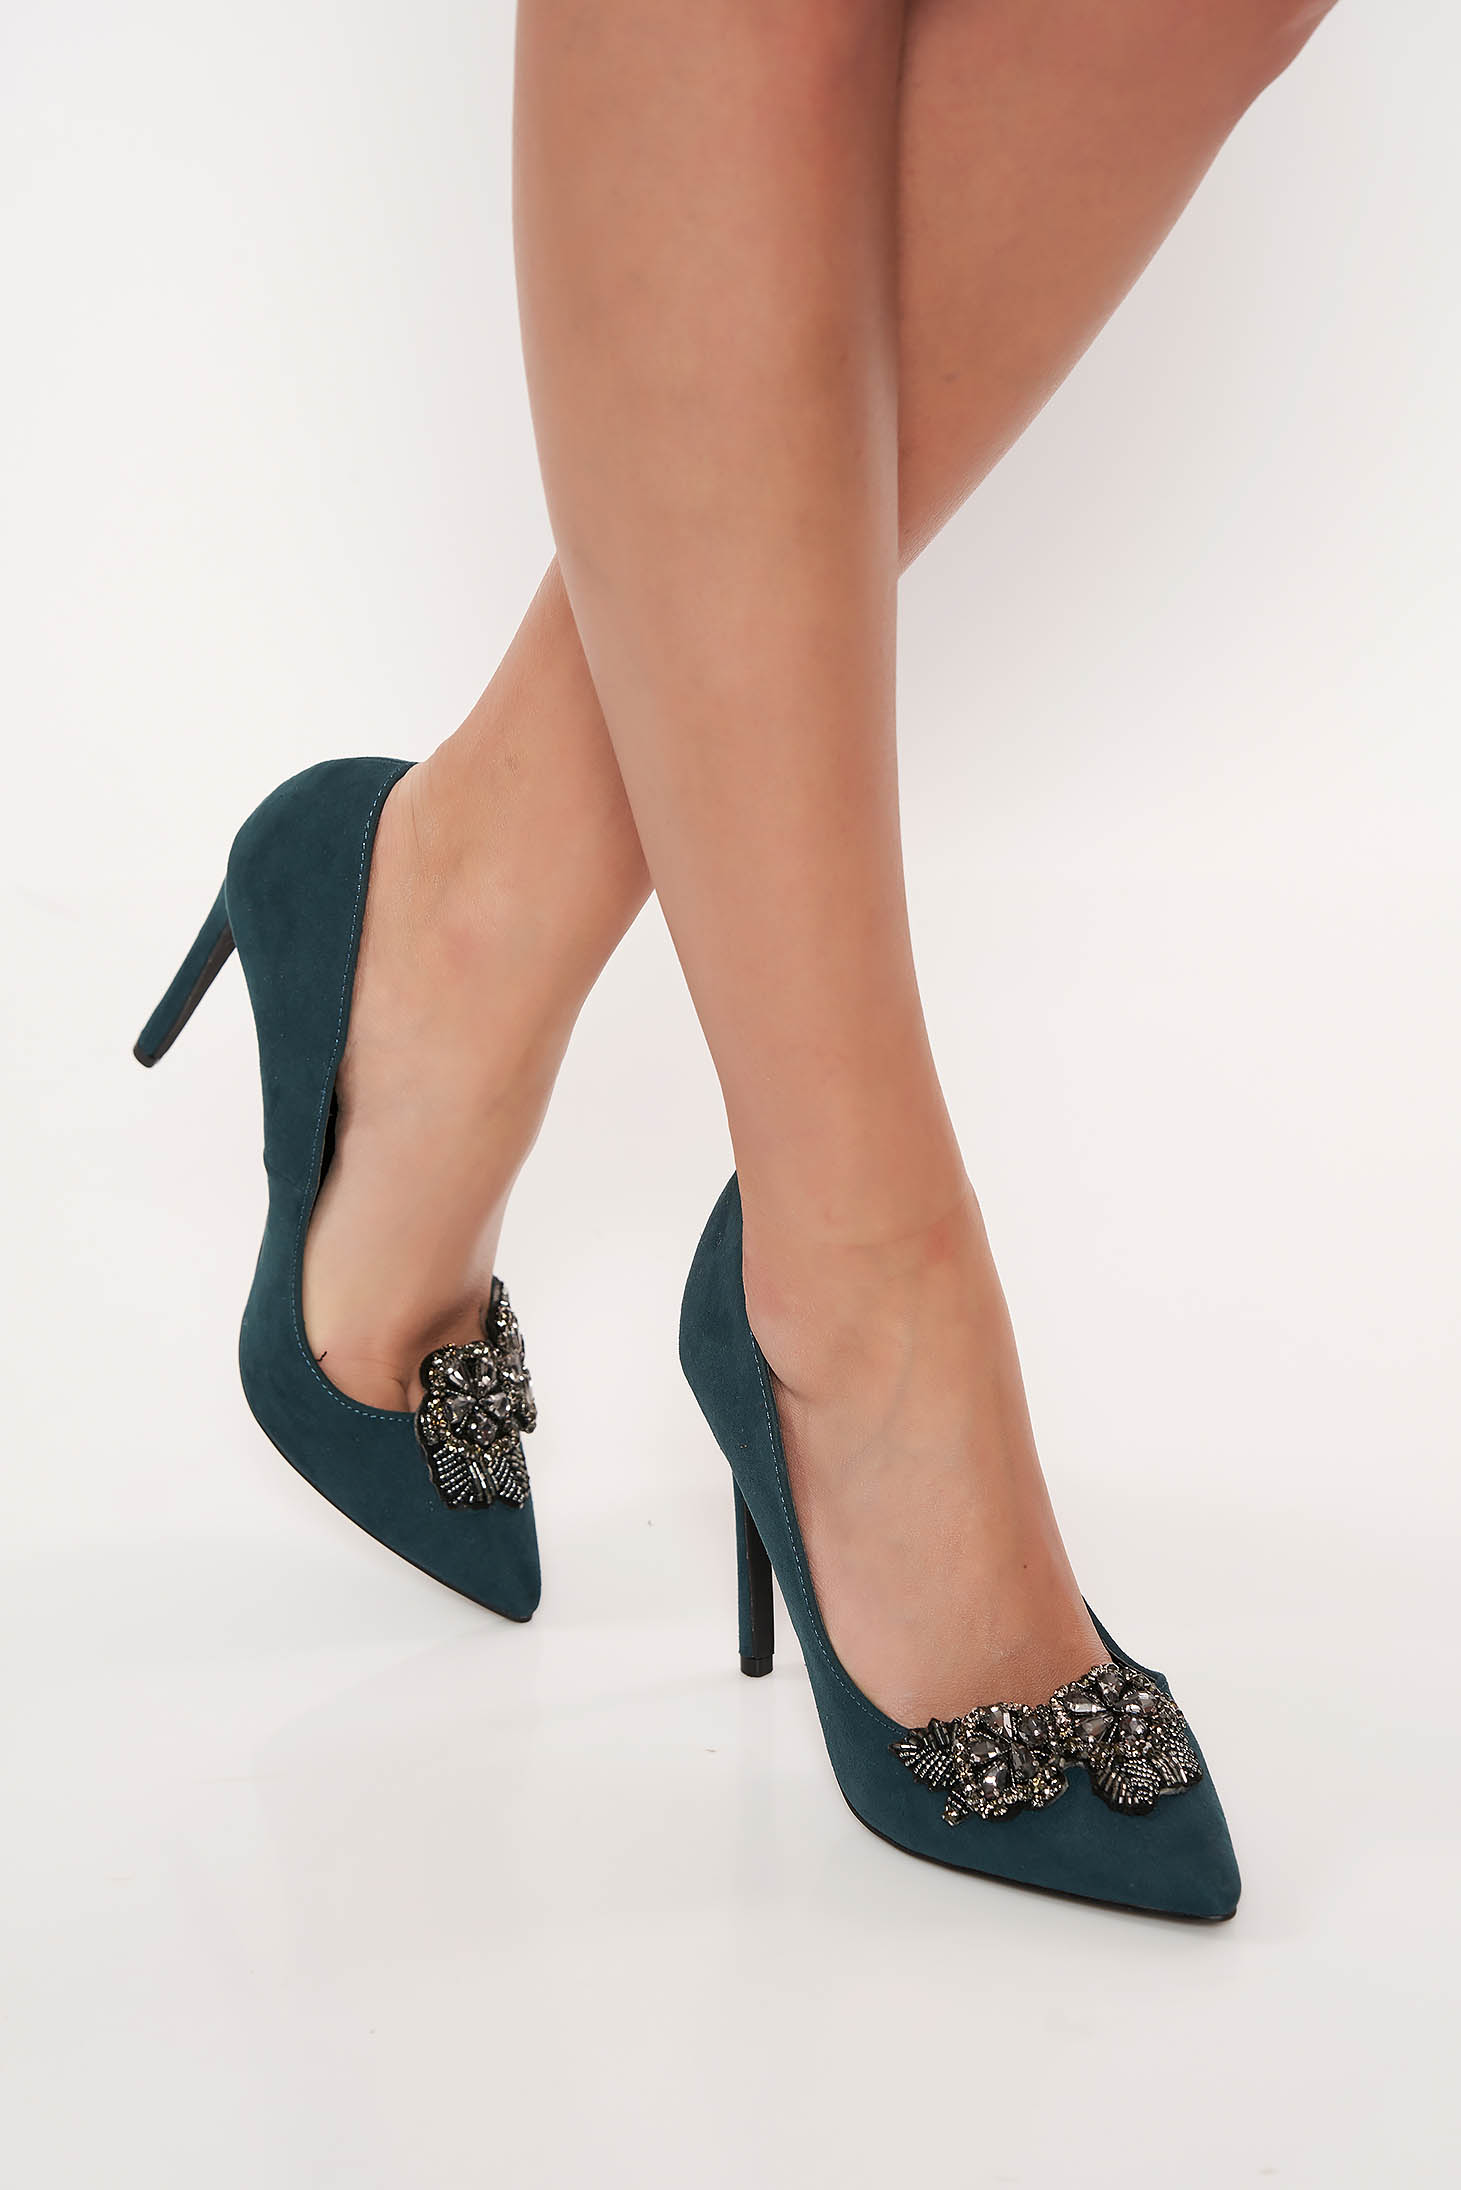 Top Secret green elegant shoes from ecological leather slightly pointed toe tip with small beads embellished details